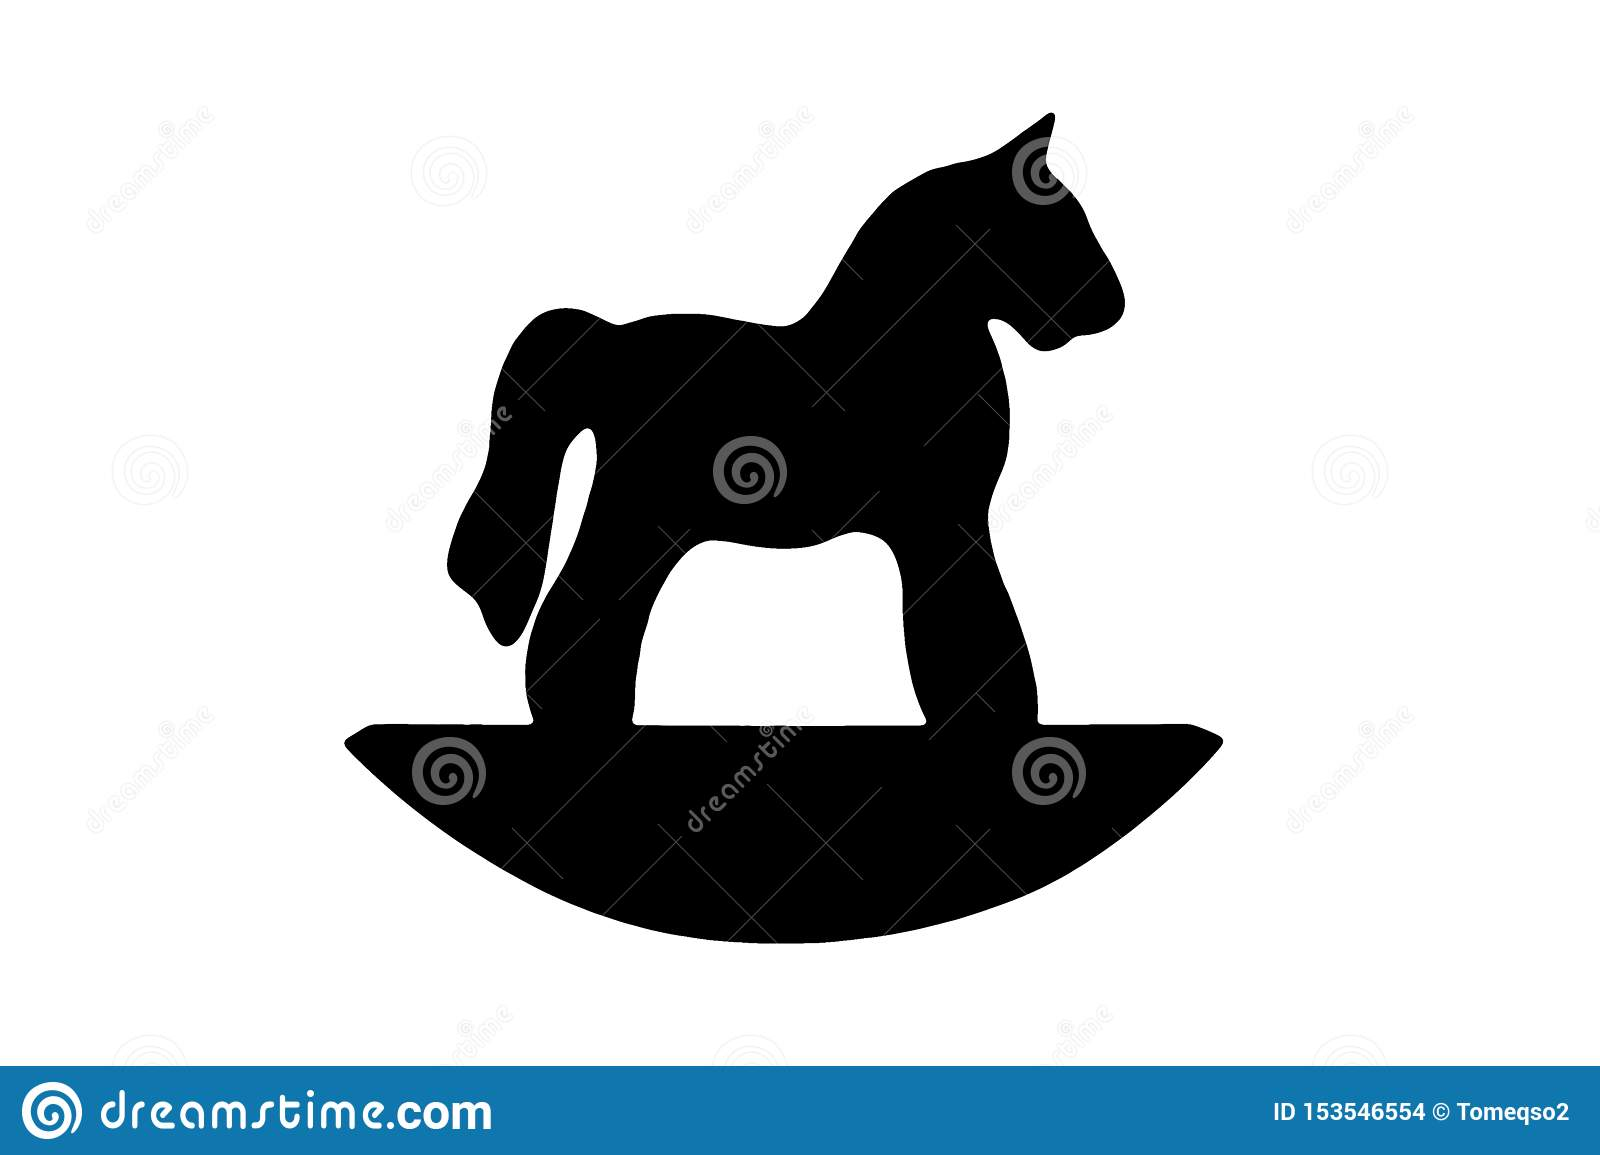 Rocking Horse Silhouette Photos Free Royalty Free Stock Photos From Dreamstime